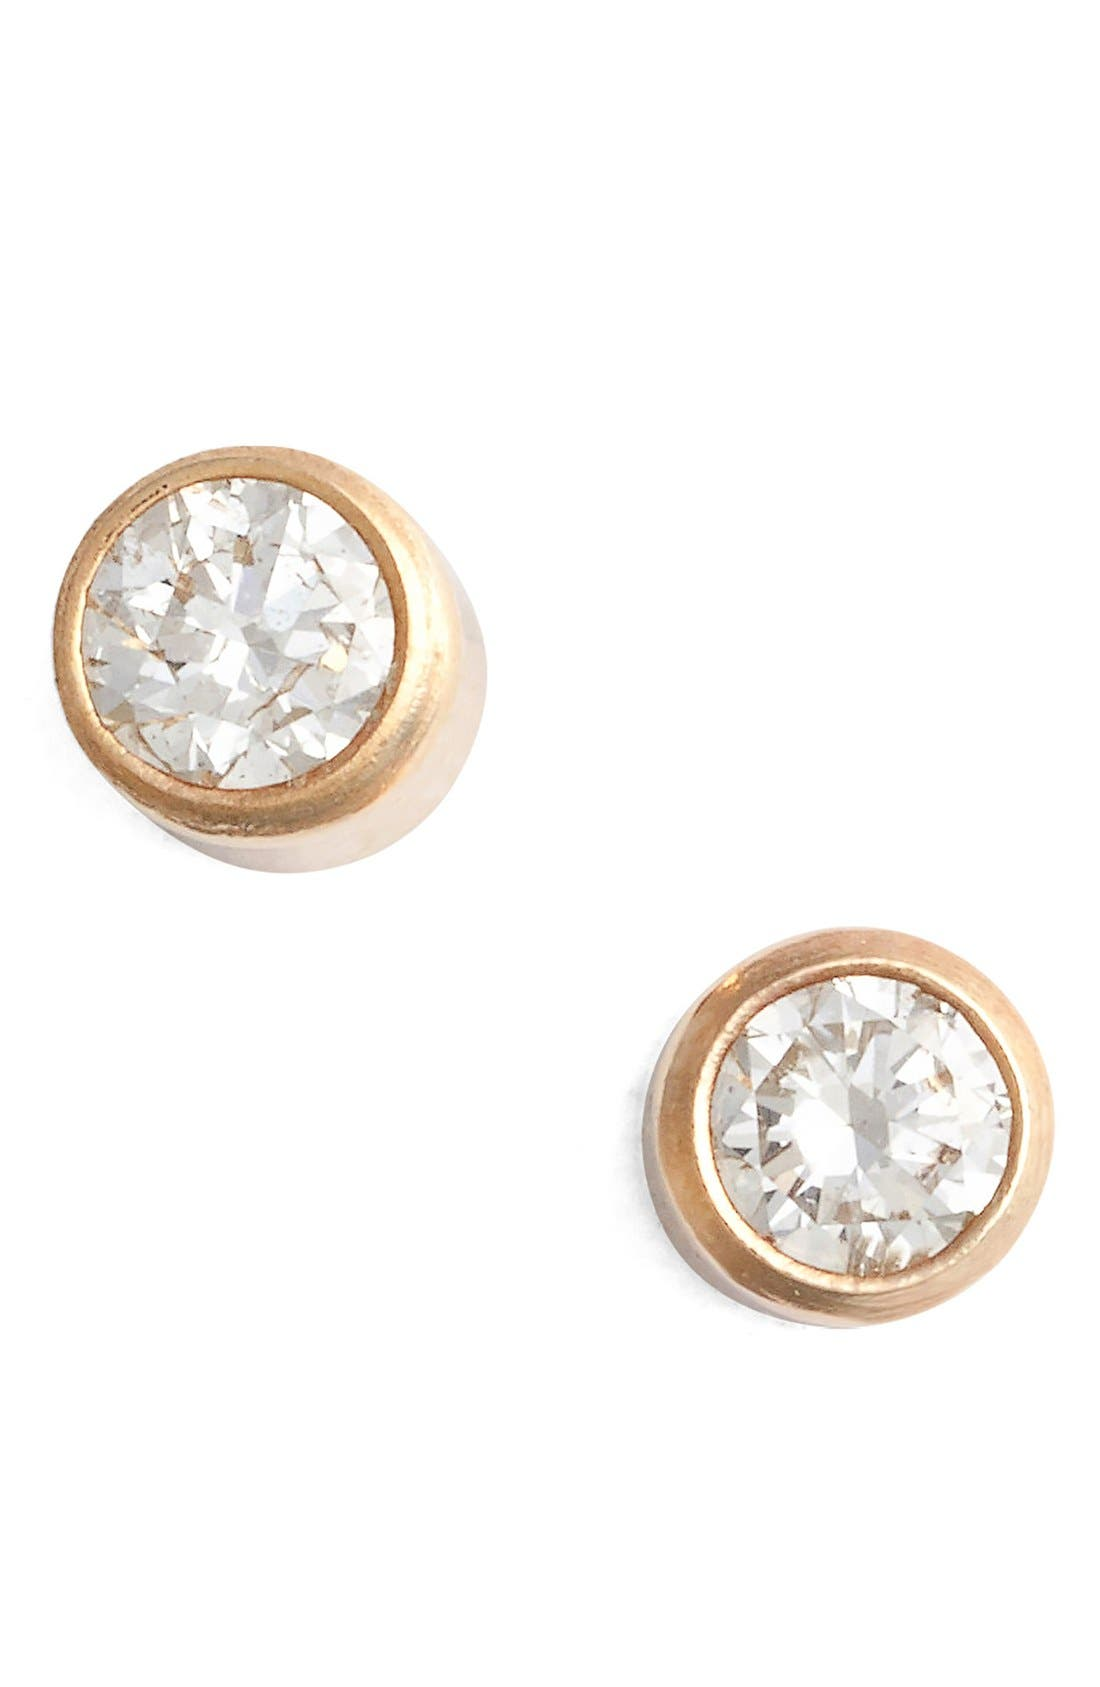 Zoë Chicco Diamond Bezel Stud Earrings